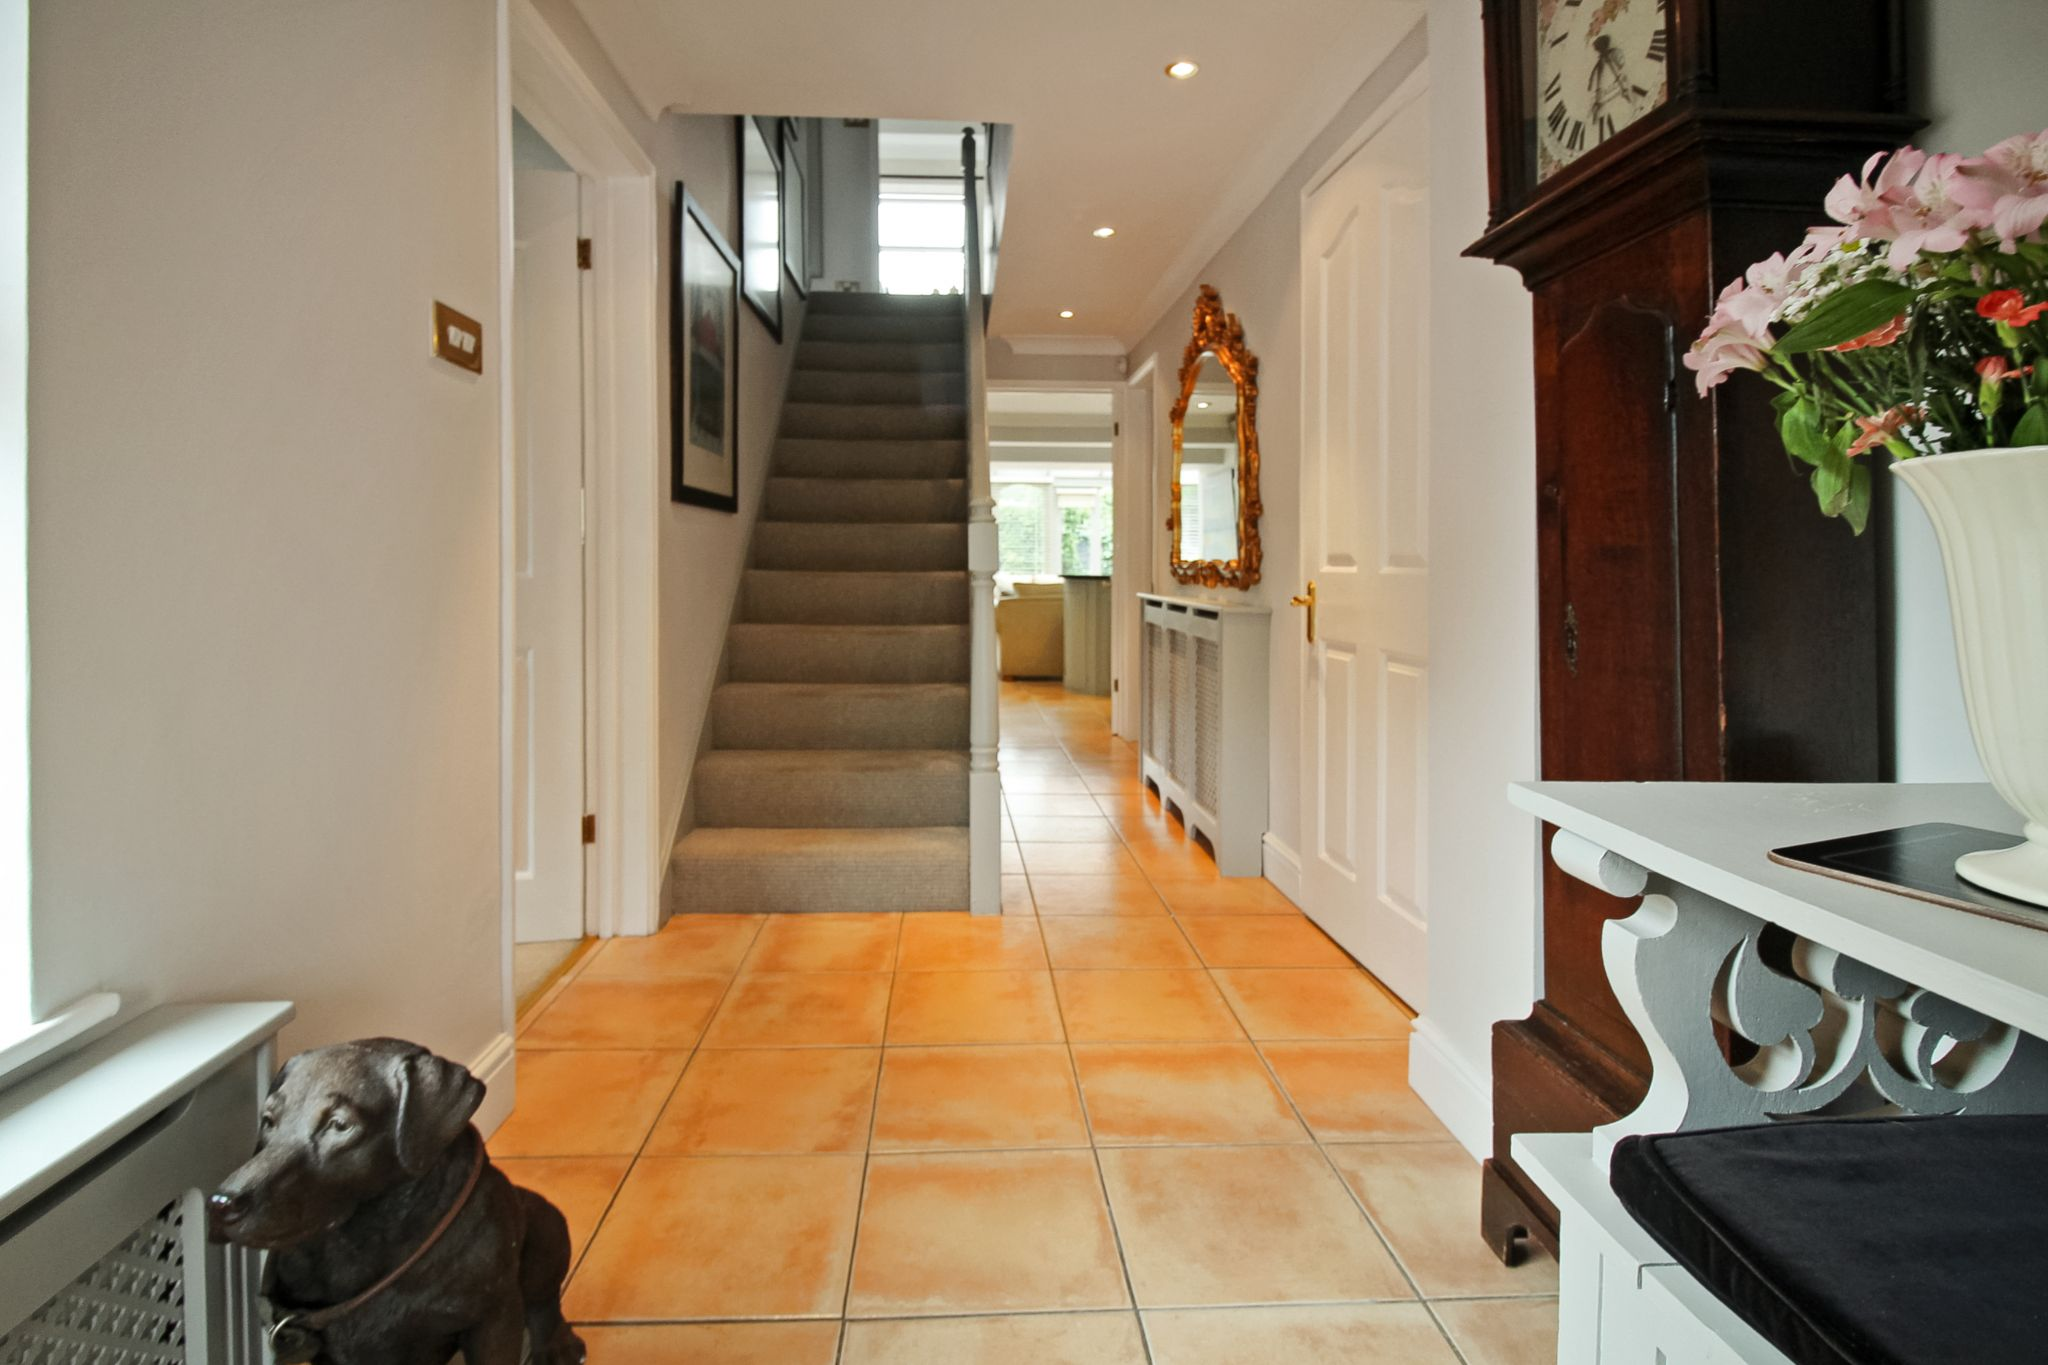 4 bedroom detached house For Sale in Solihull - Photograph 2.